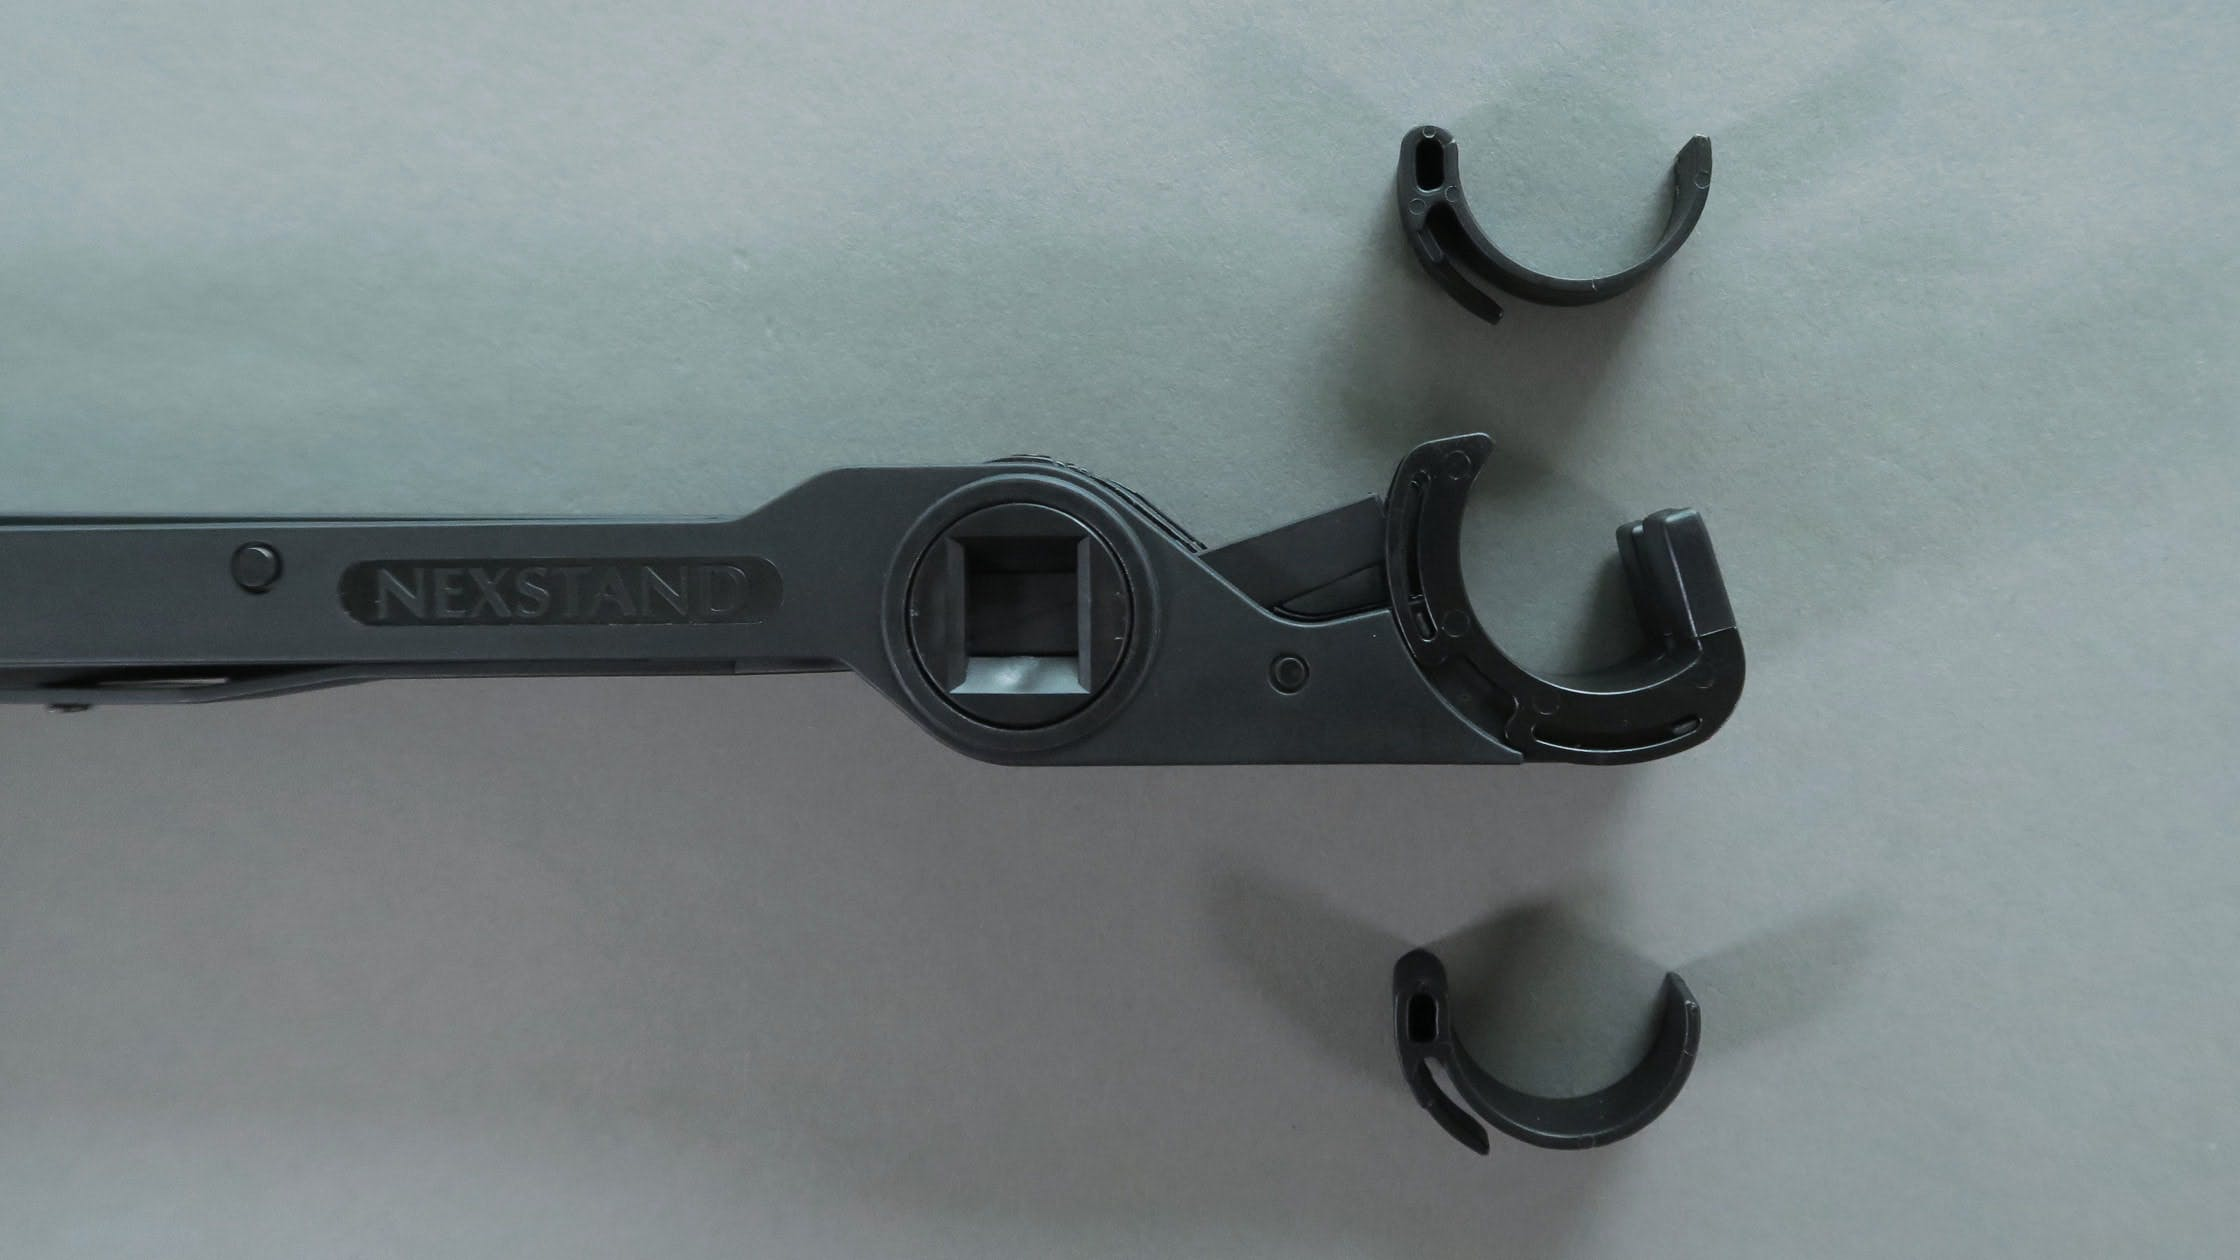 Nexstand K2 Spacer Clips